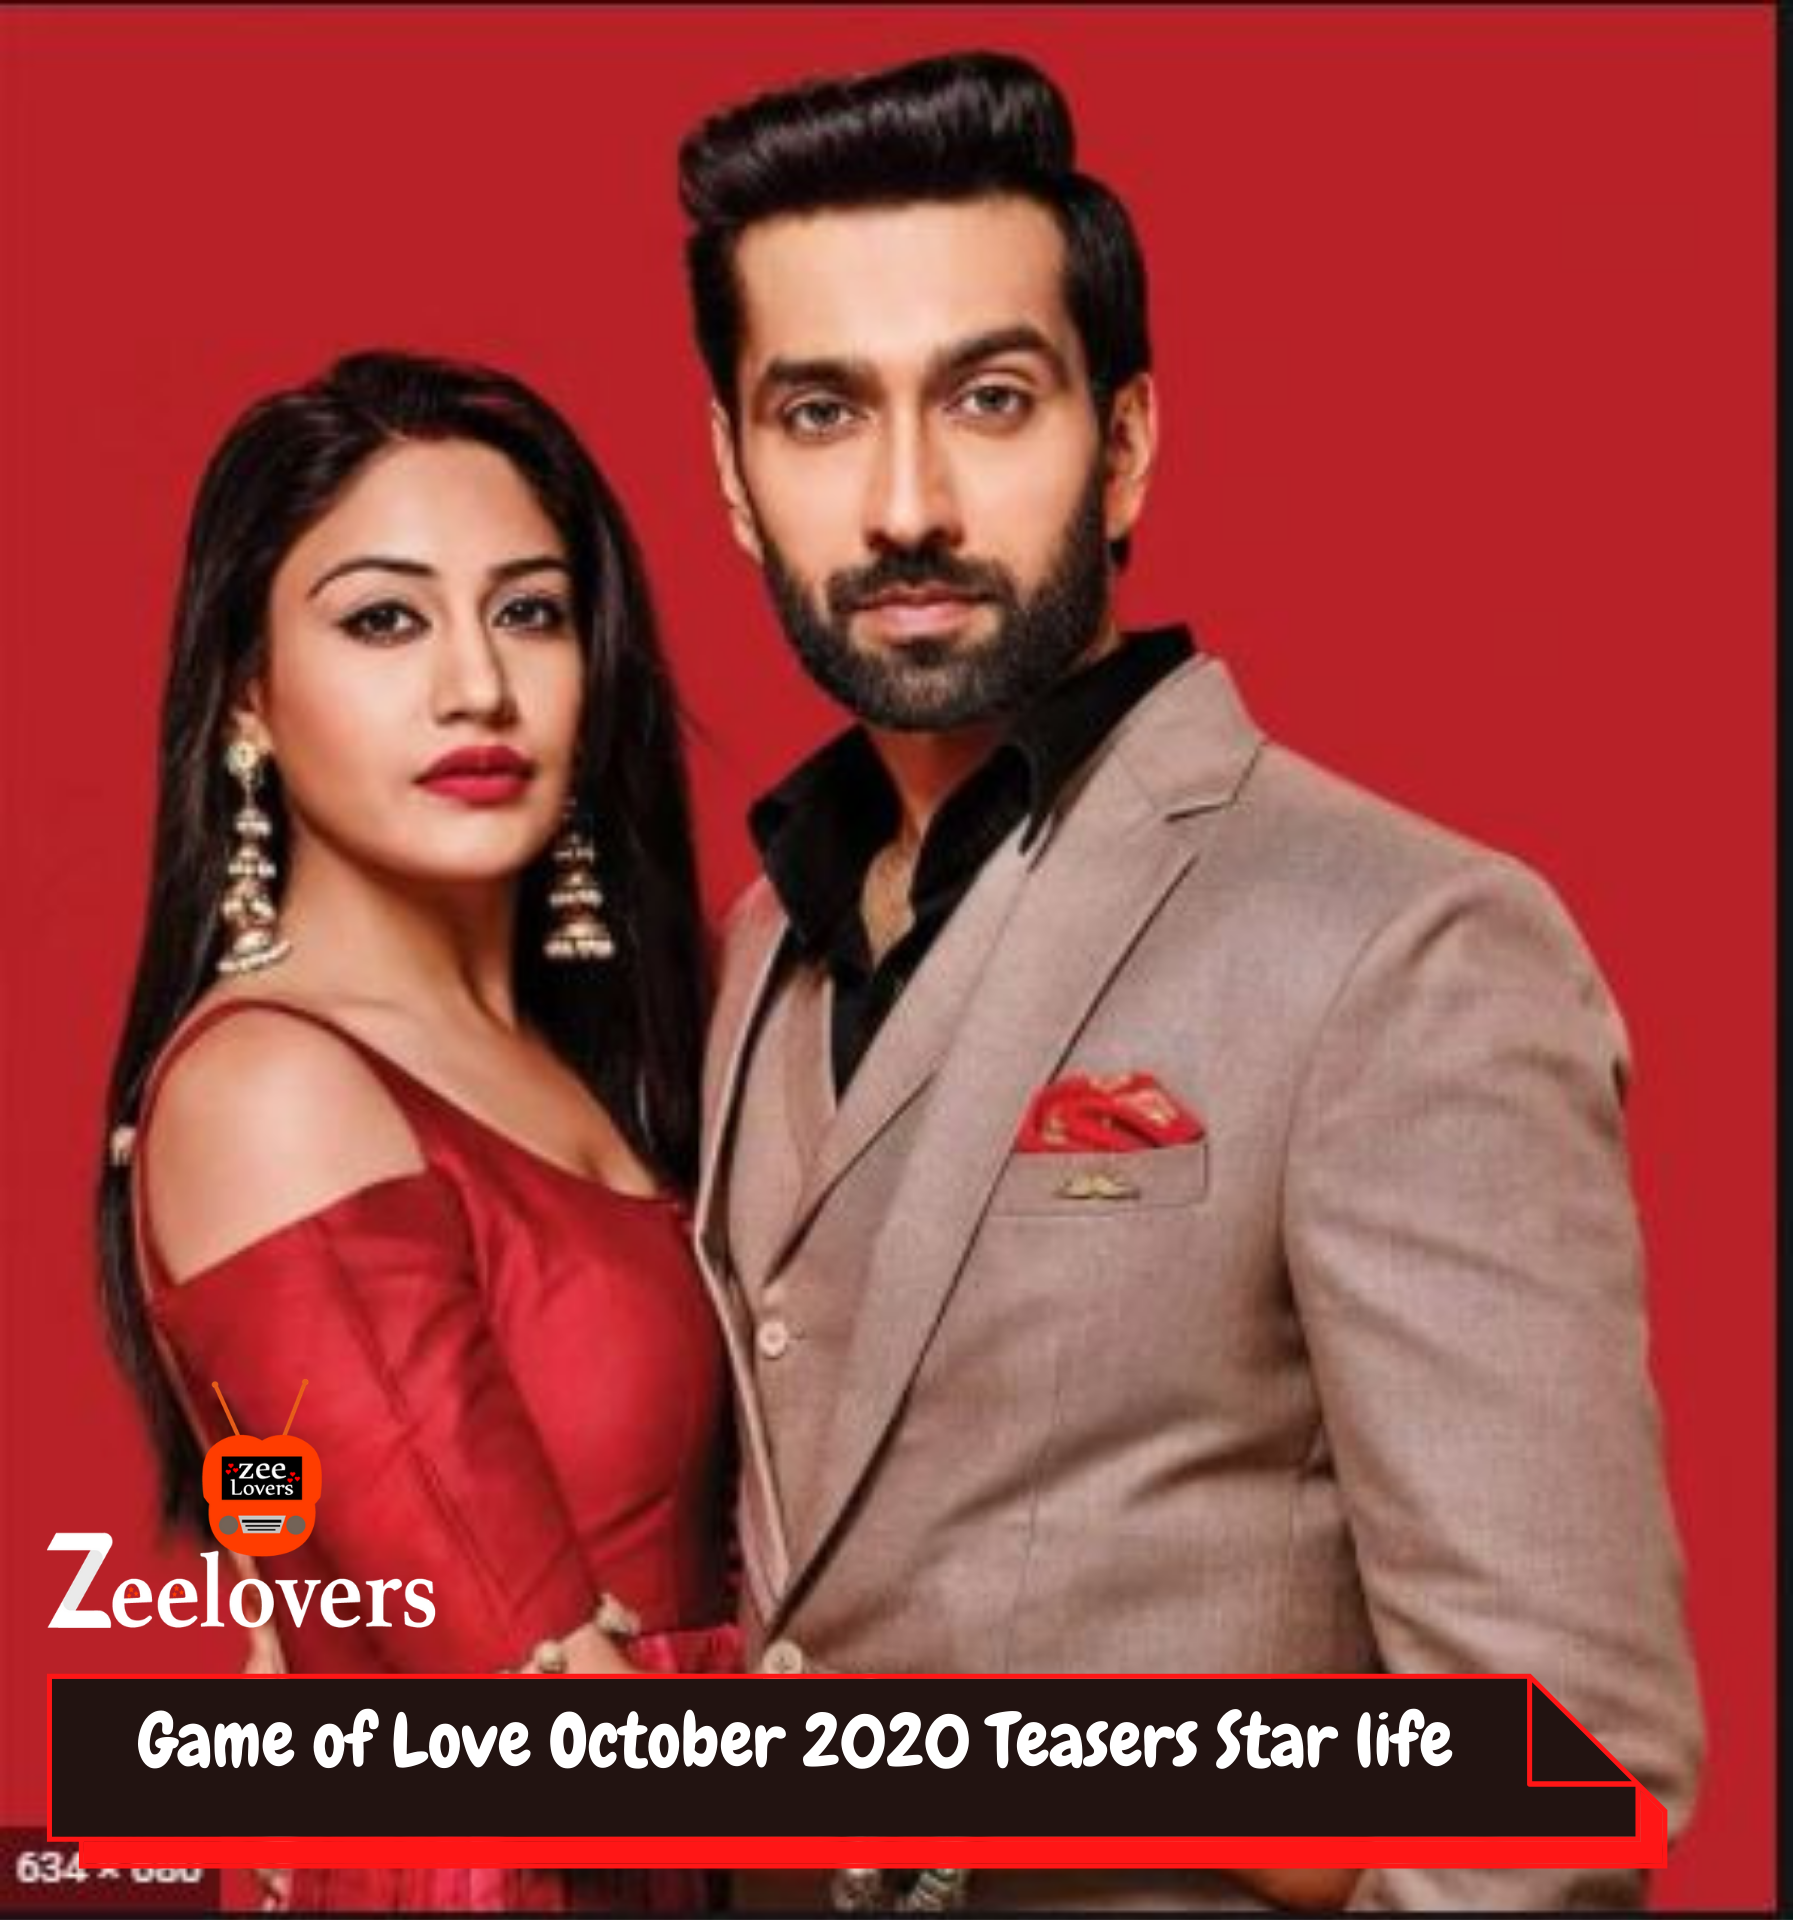 Game of Love October 2020 Teasers Star life